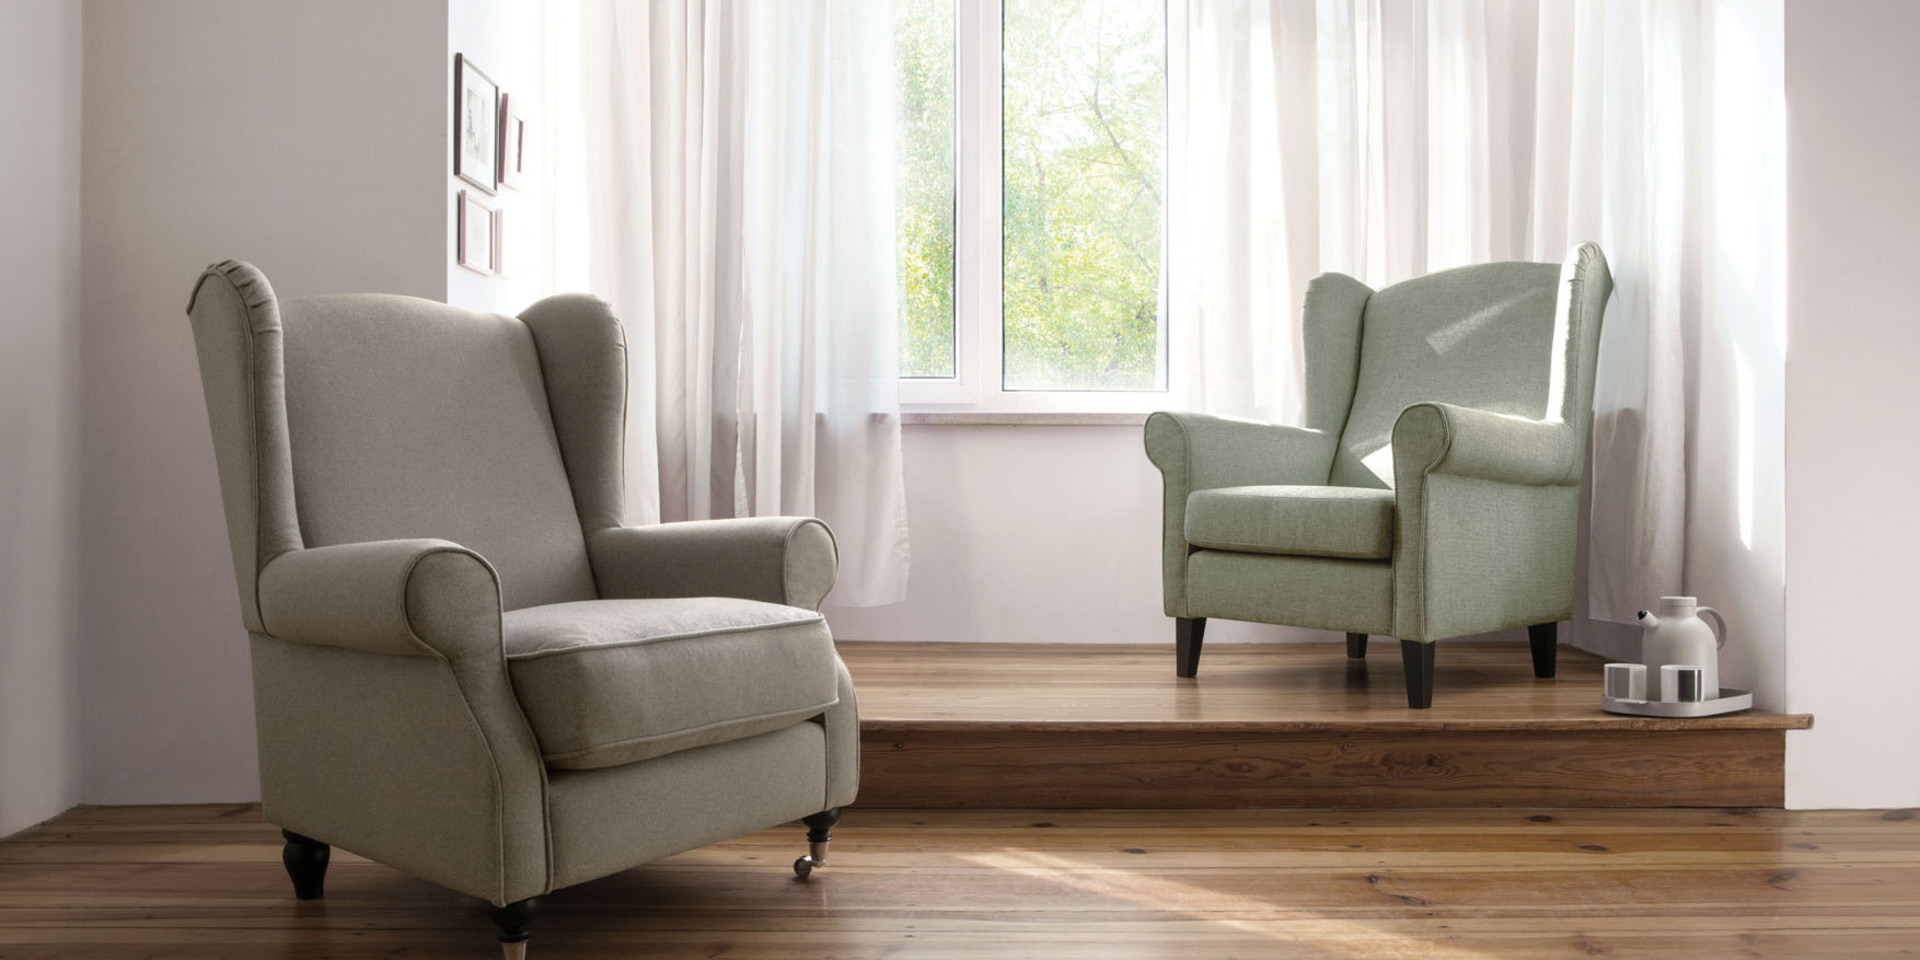 sits-humphrey-ambiance-humphrey_armchair_high_panno1000_light_grey_watson_armchair_himalaya7_green_3